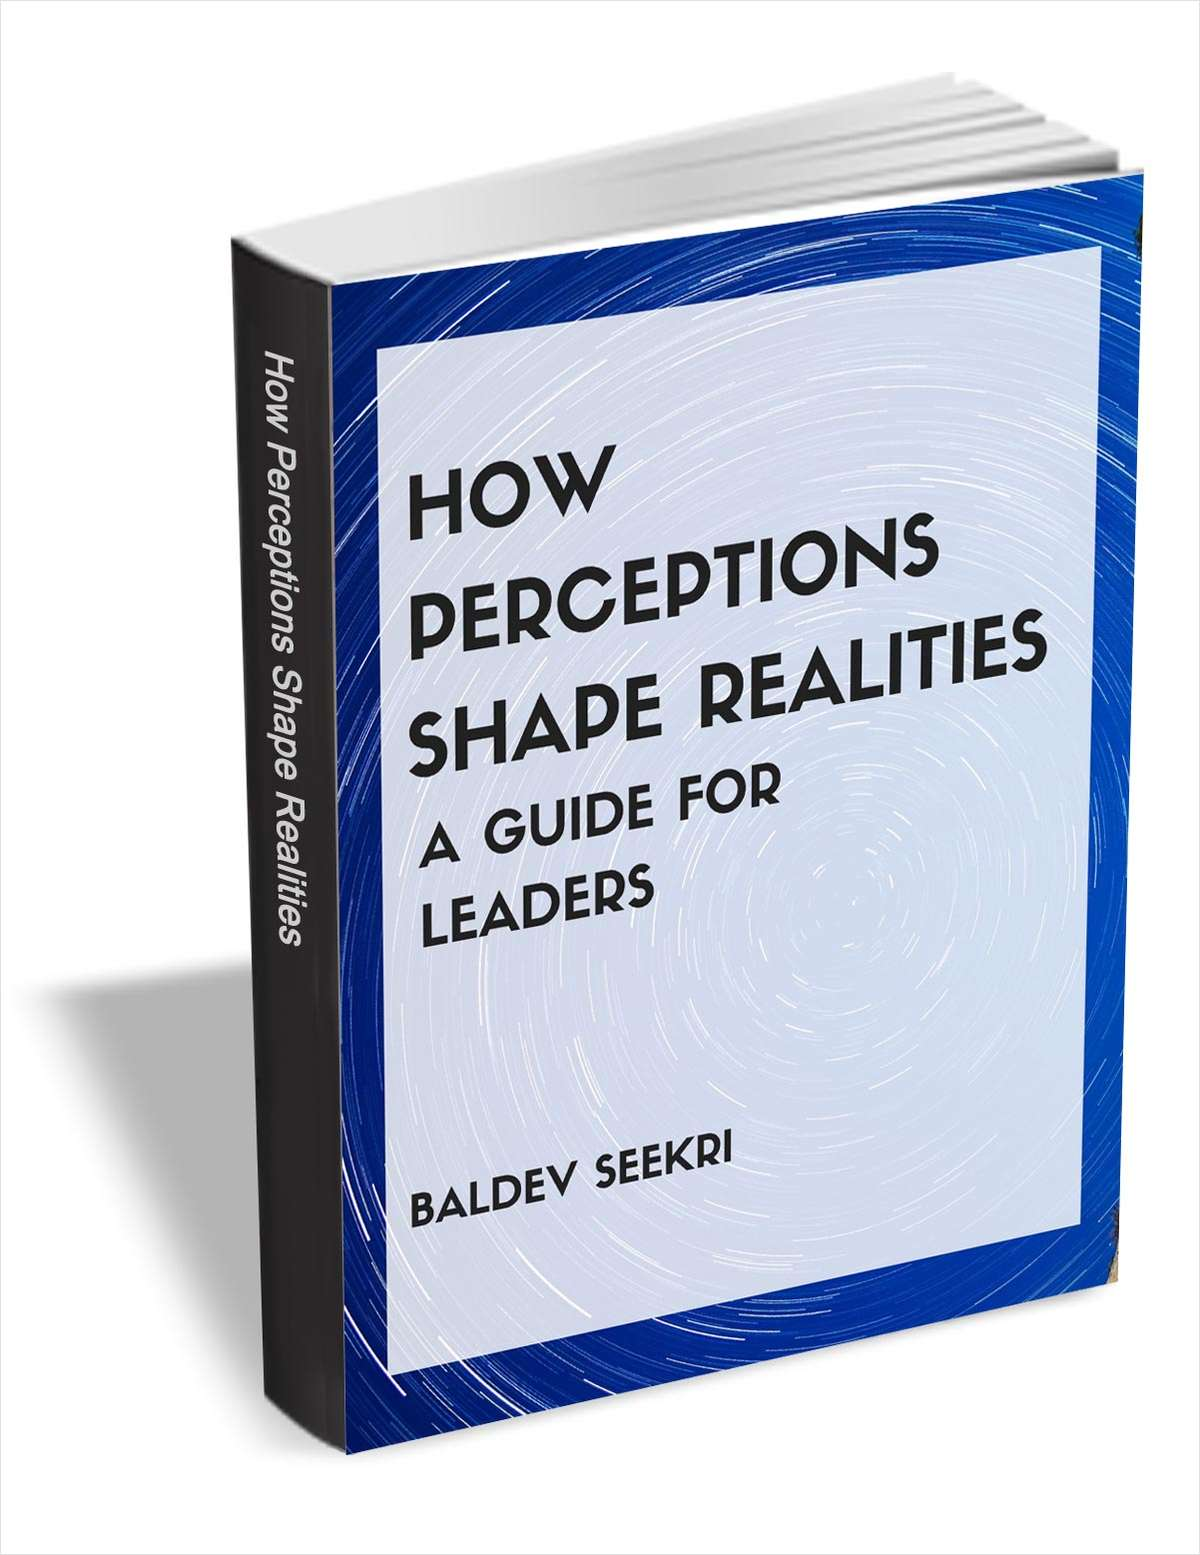 How Perceptions Shape Realities - A Guide for Leaders